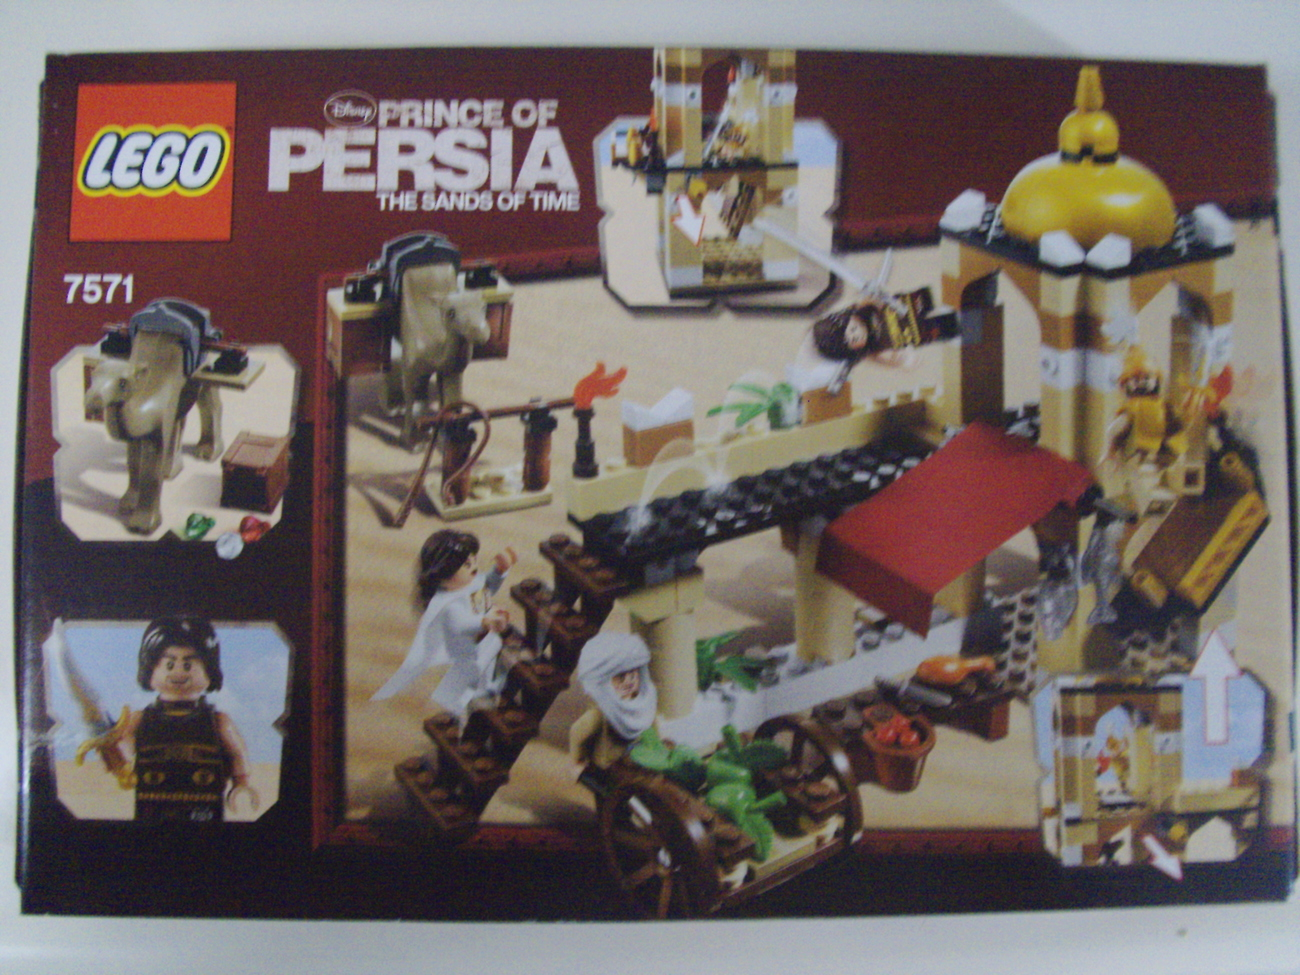 LEGO Disney Prince Of Persia Sands of Time lot of 2 sets 7571 and 7569 - New